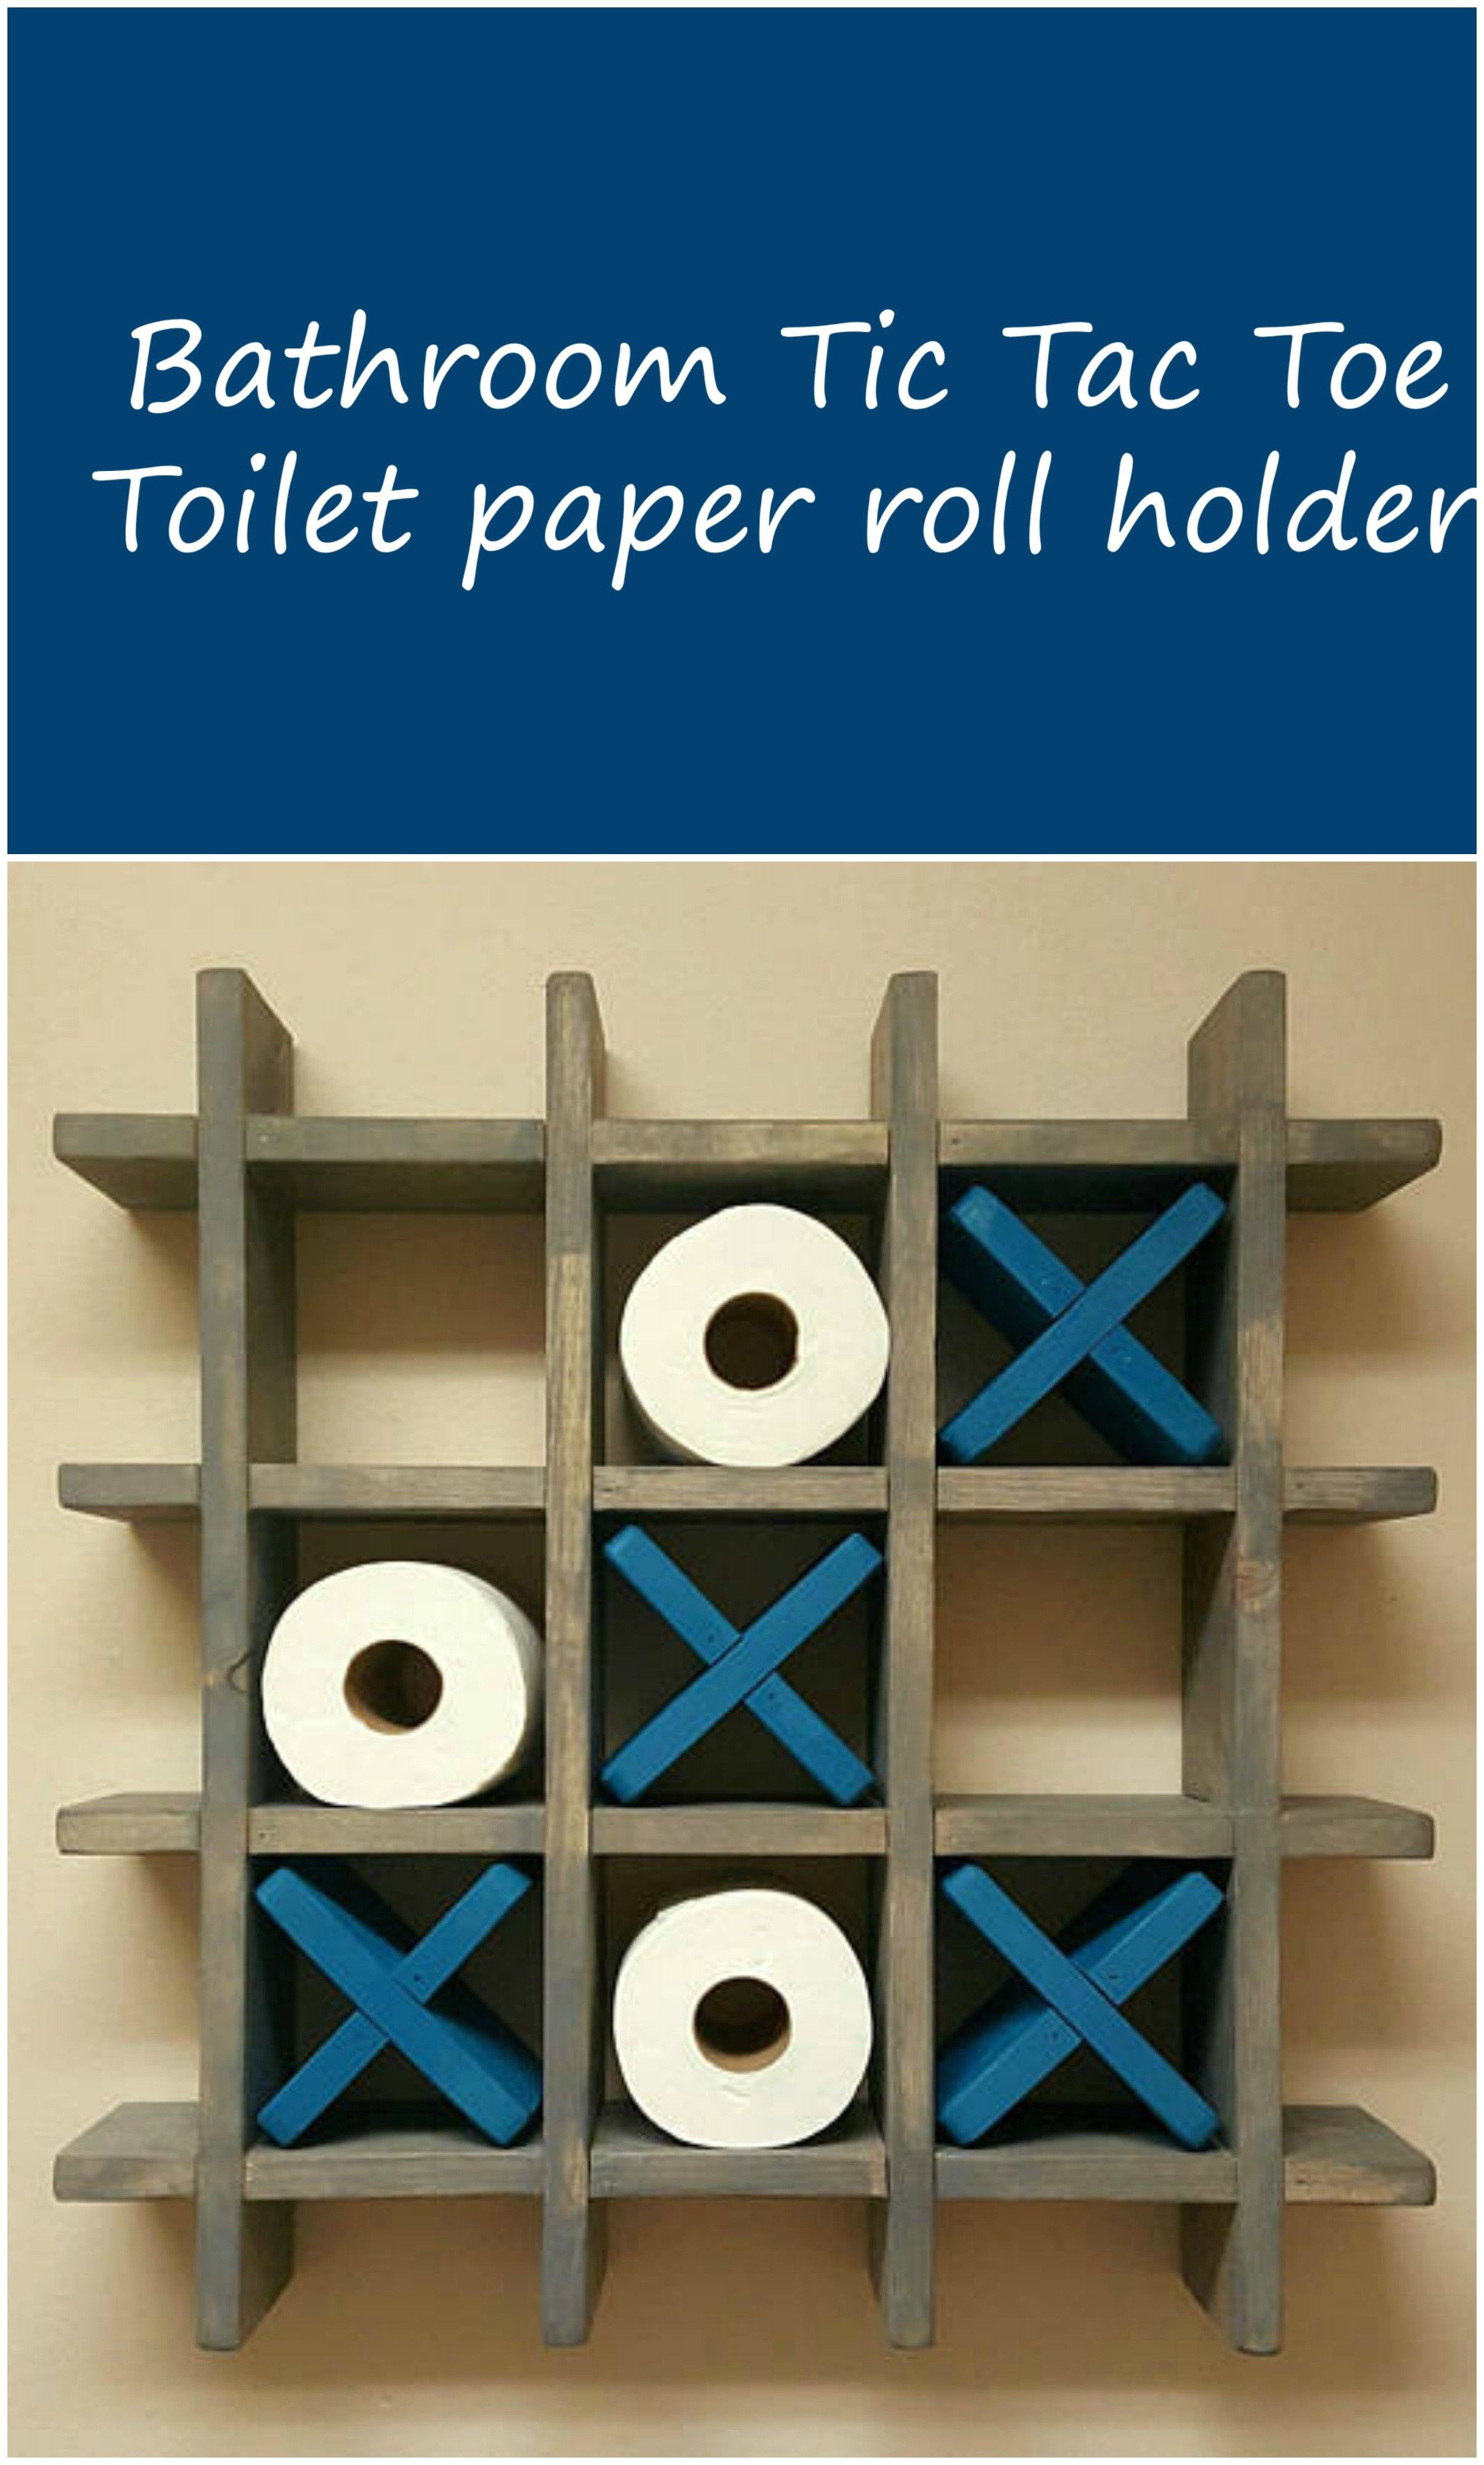 bathroom tic tac toe game made to order toilet paper roll holder